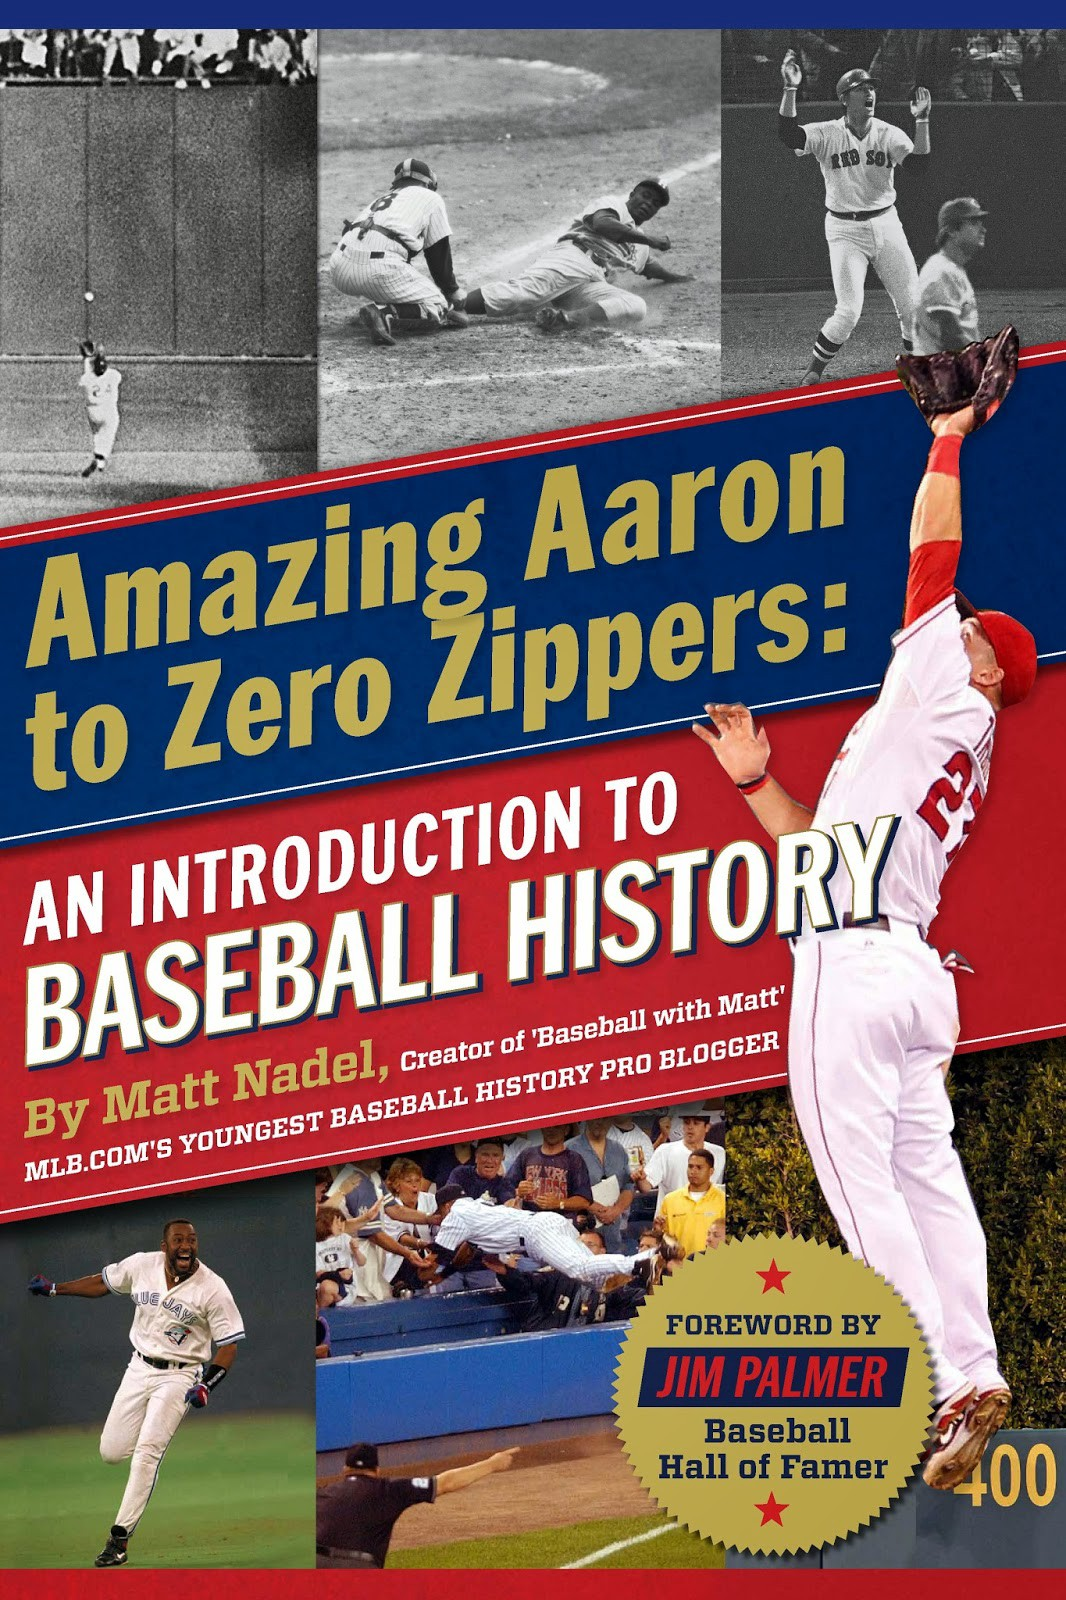 an introduction to the history of baseball in america History of baseball in the united states from br bullpen the history of baseball in united states dates to the before the 19th century , and was the locale of the evolution of baseball.